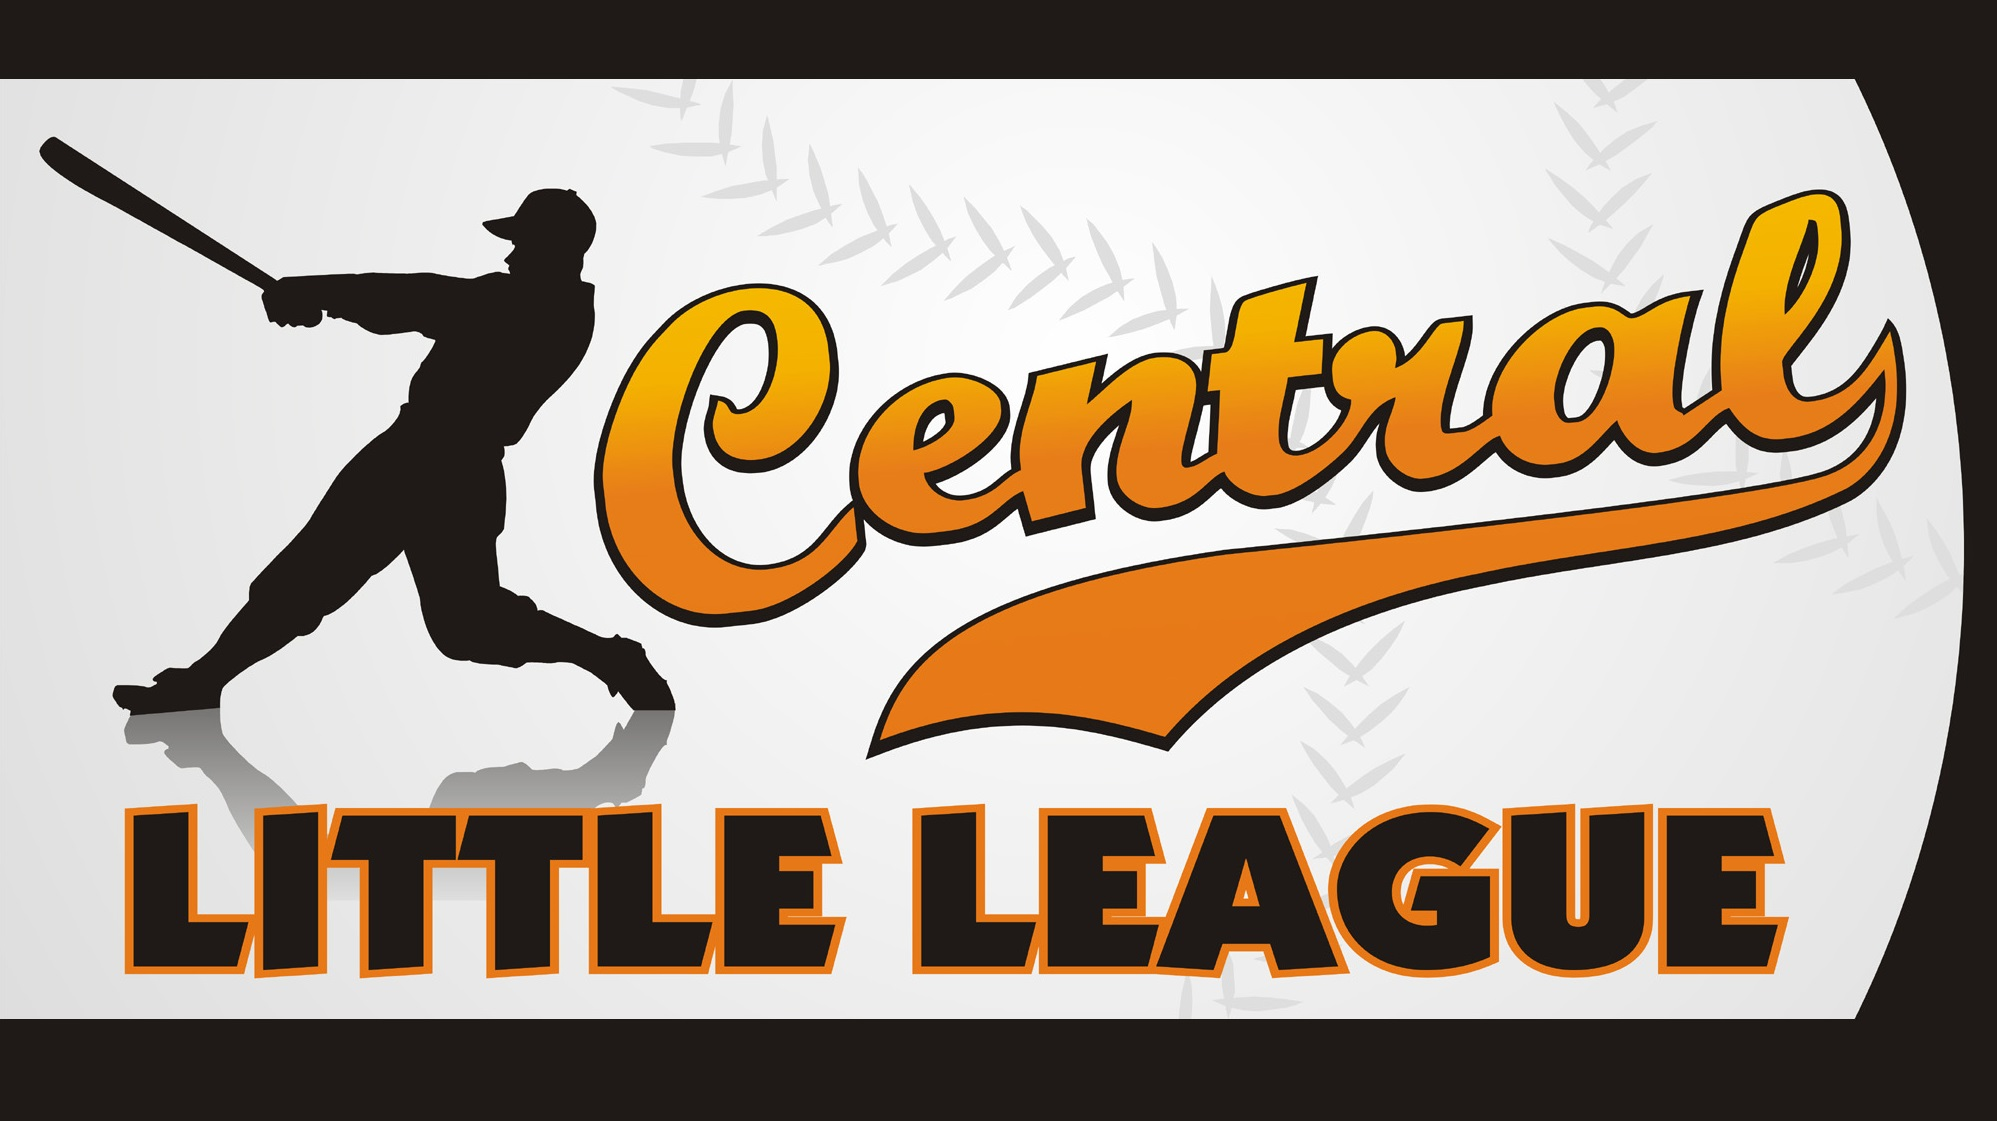 Central ll logo small 3